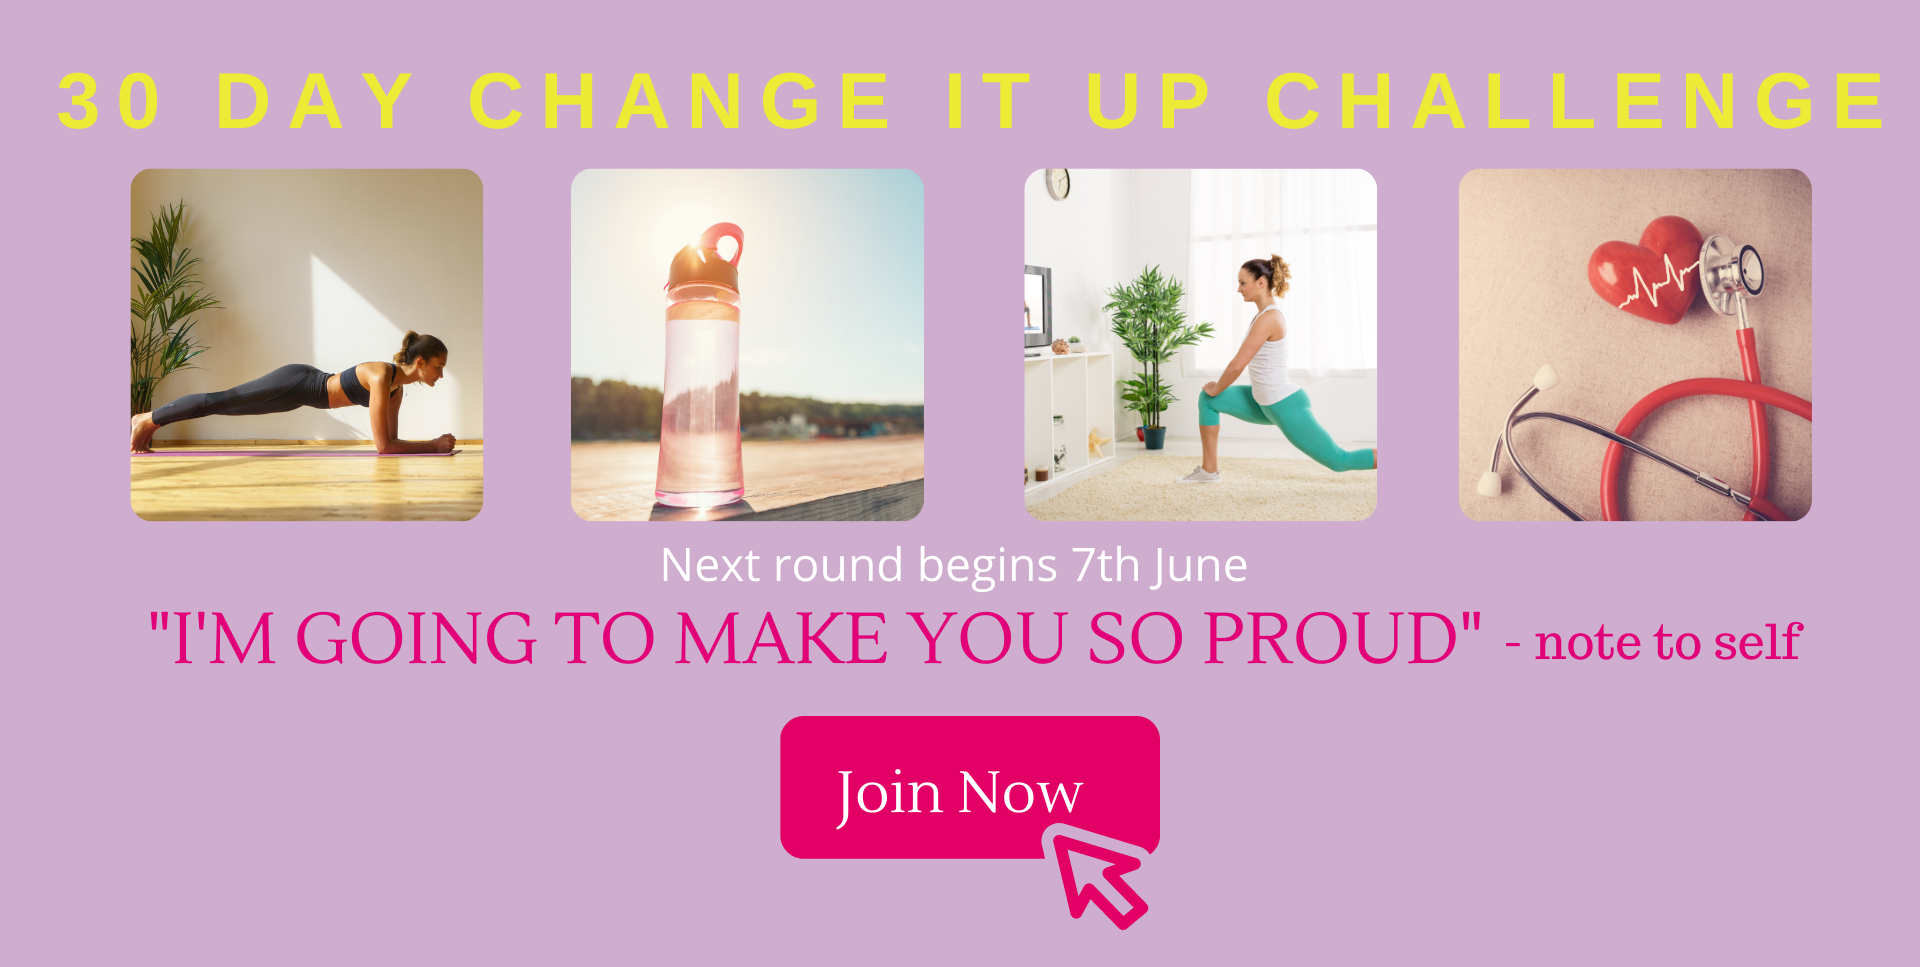 30 day change it up workout challenge